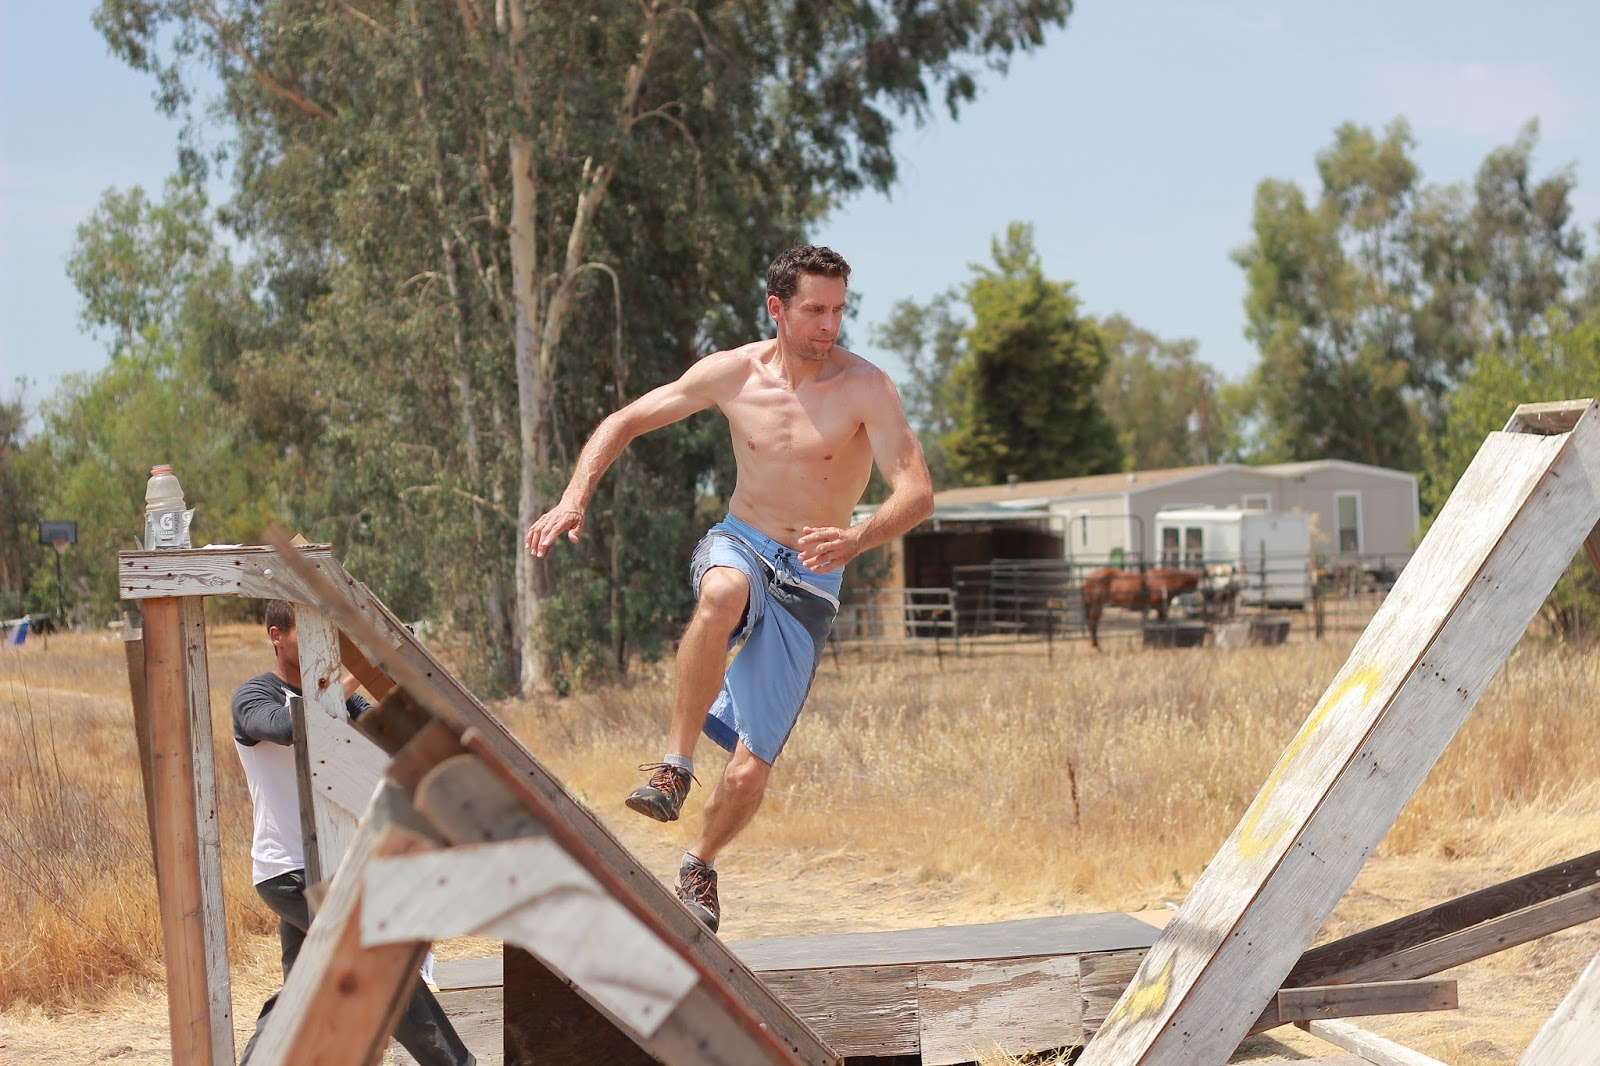 Backyard Ninja Warrior Plans : Central California Ninja Warrior Training Course (CCNWTC) August 2013